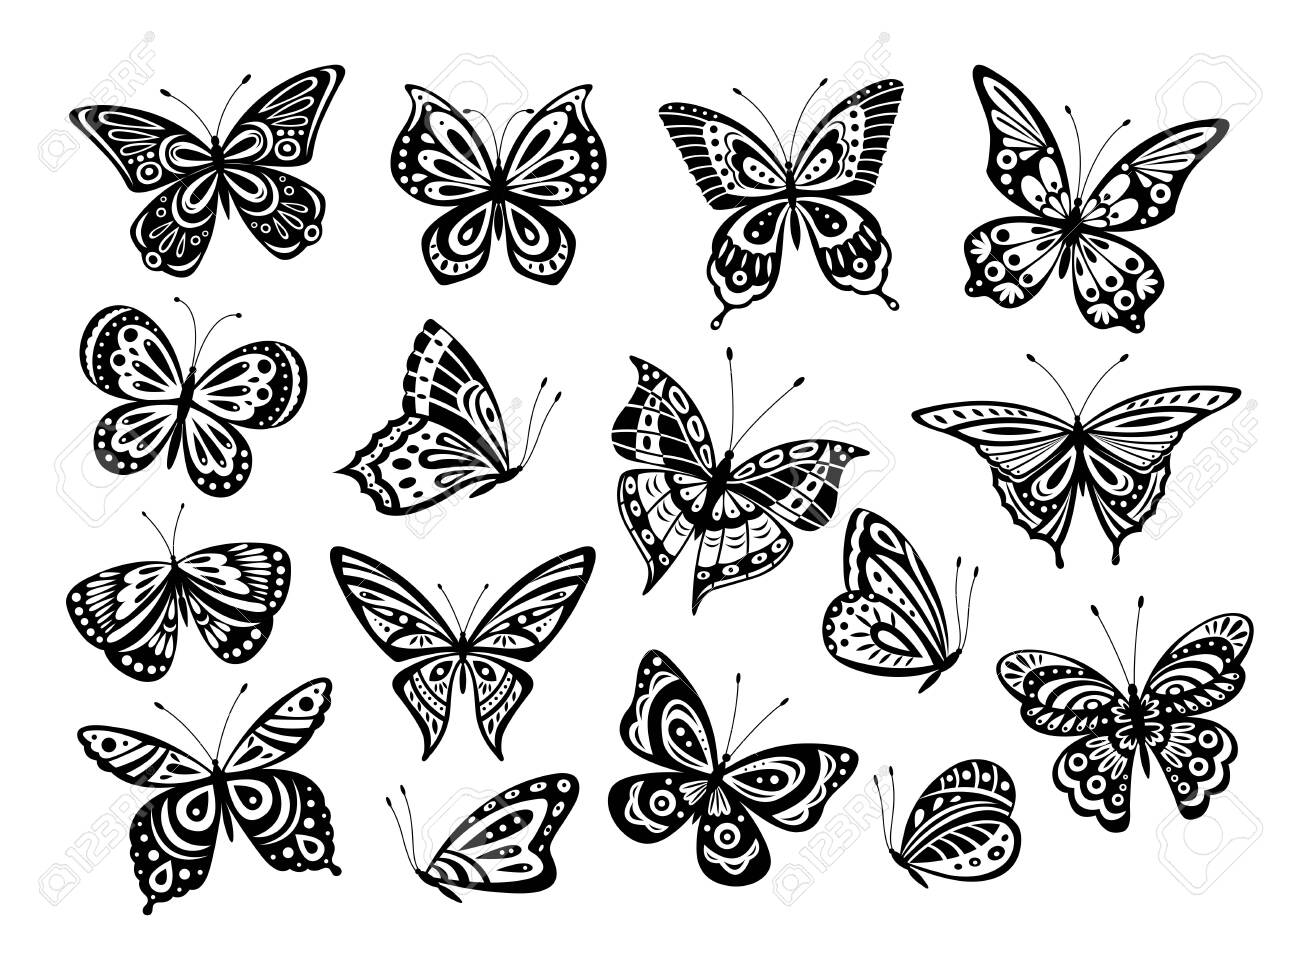 Black Butterflies Drawing Butterfly Silhouette Nature Elements Royalty Free Cliparts Vectors And Stock Illustration Image 139384471